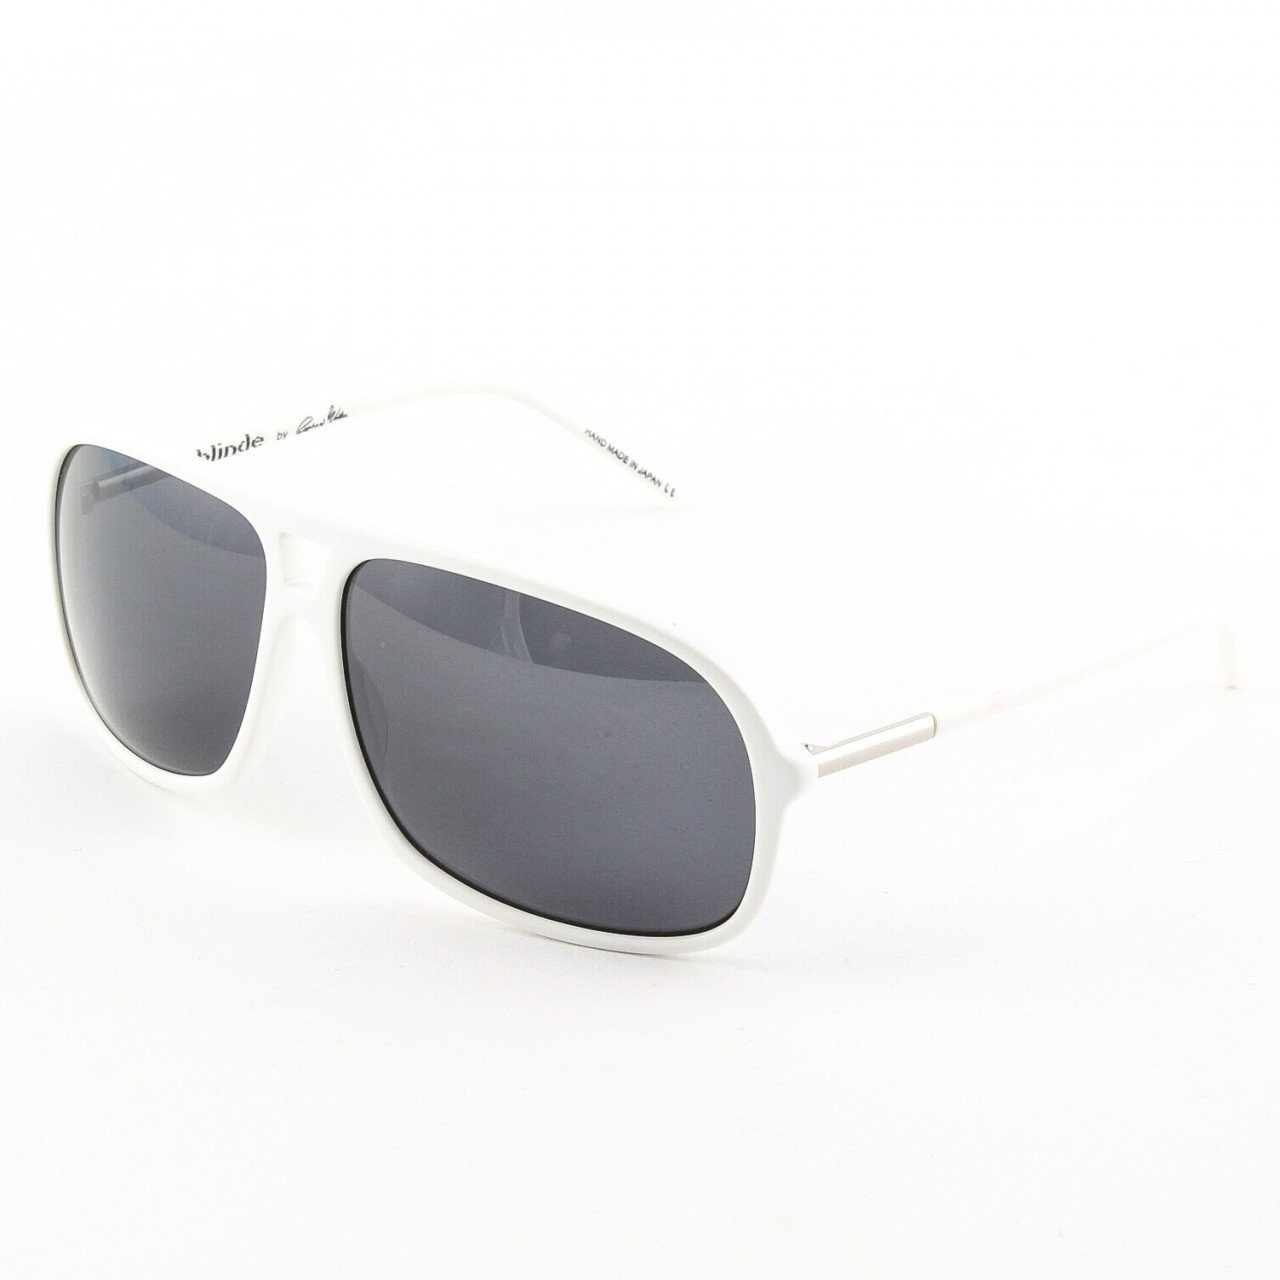 Blinde Lights Out Unisex Sunglasses Col. White Pearl with Solid Grey Lenses